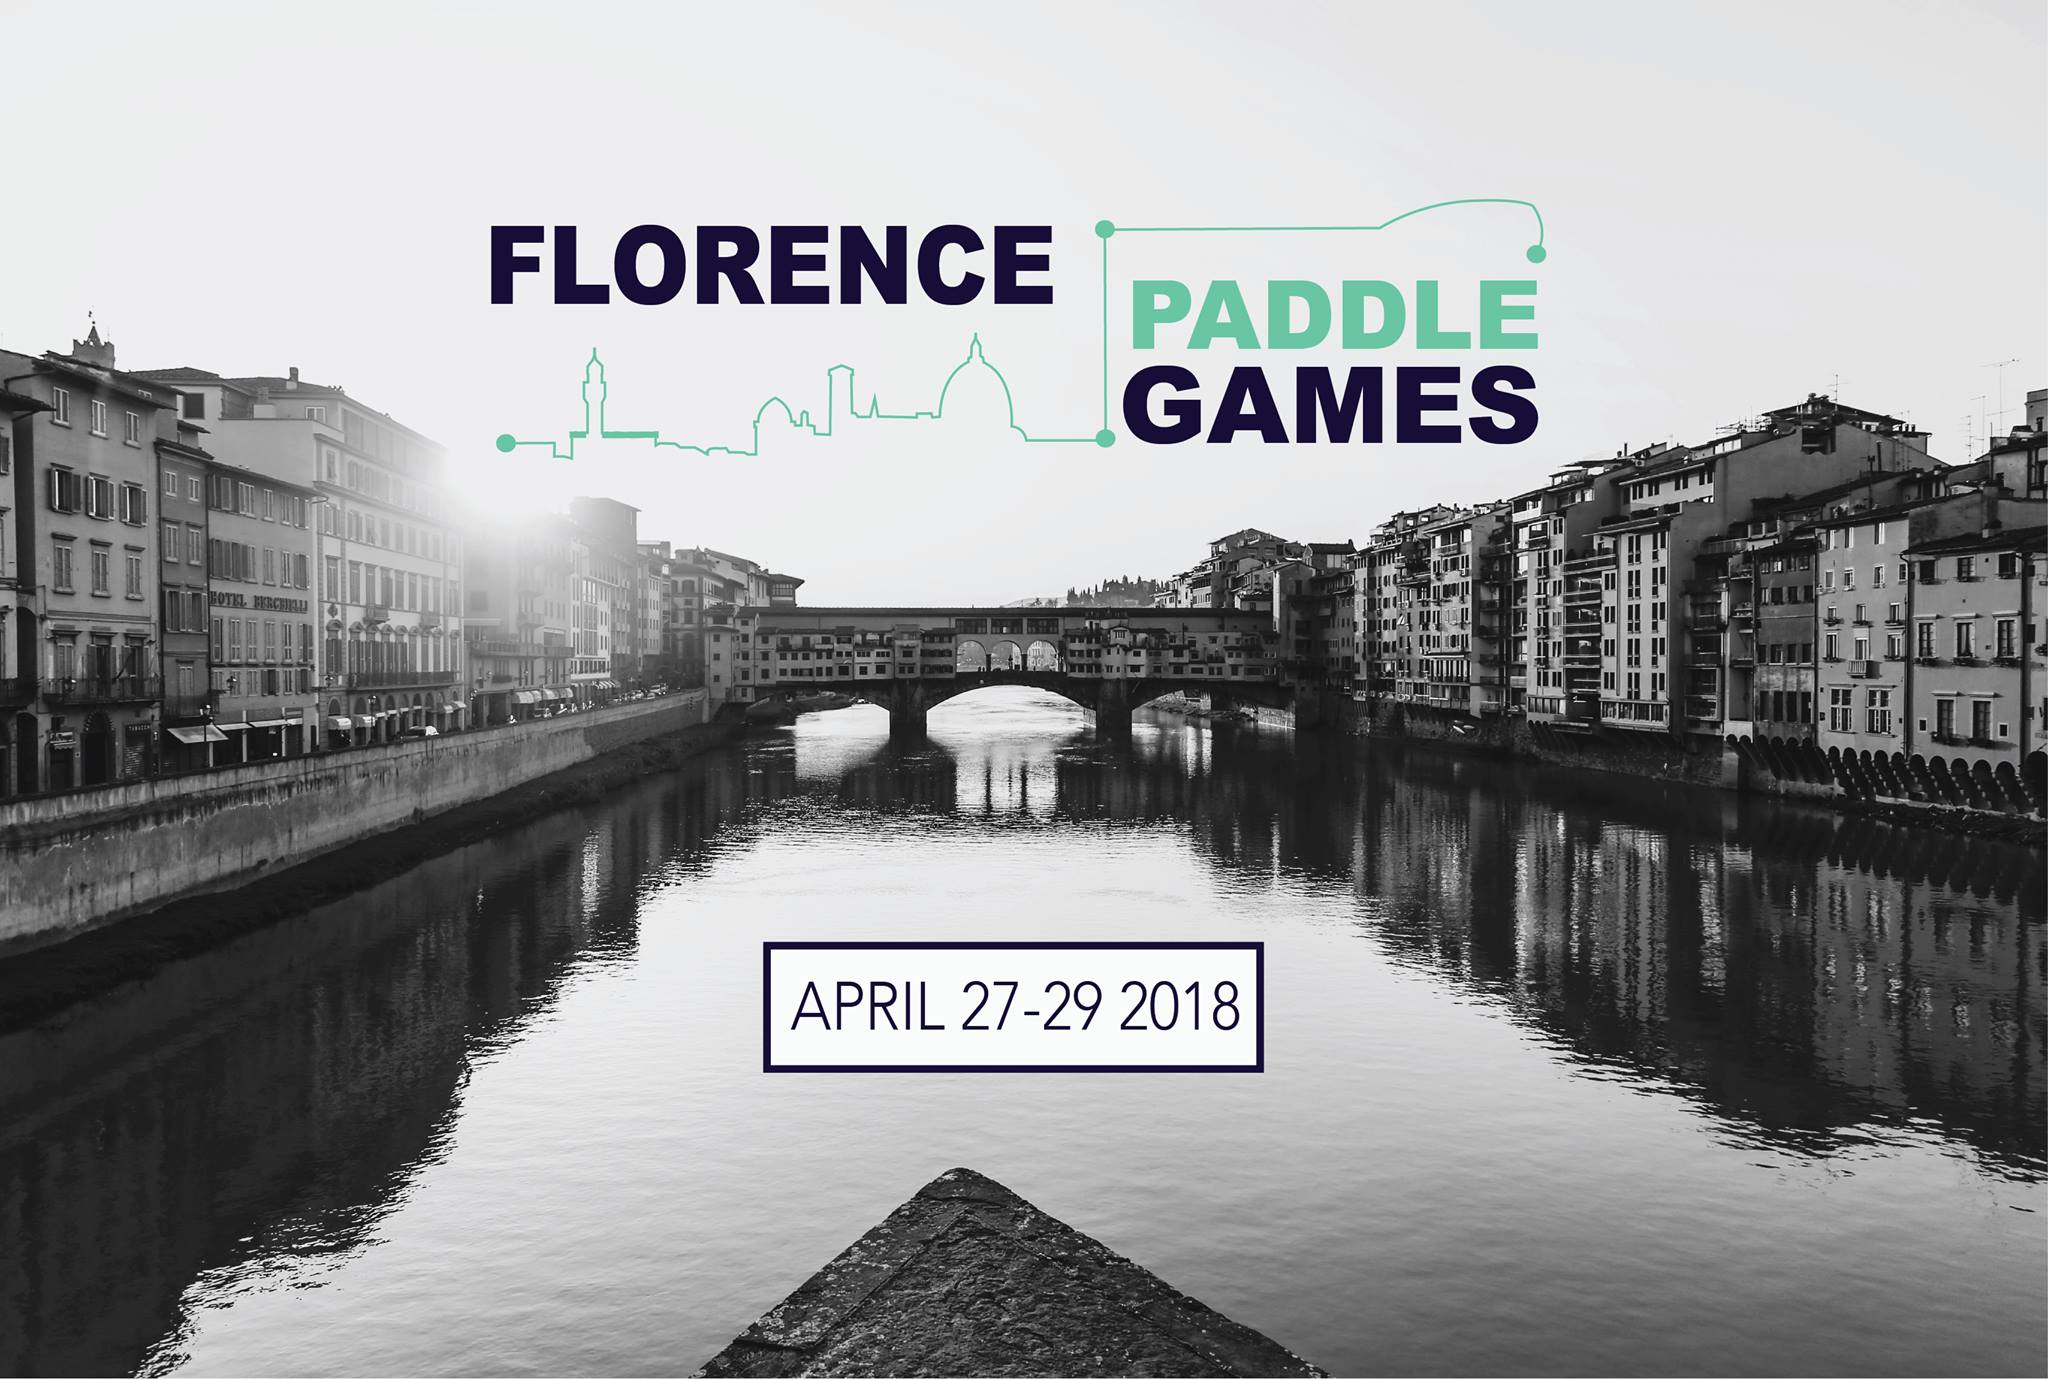 florence-paddle-games-00